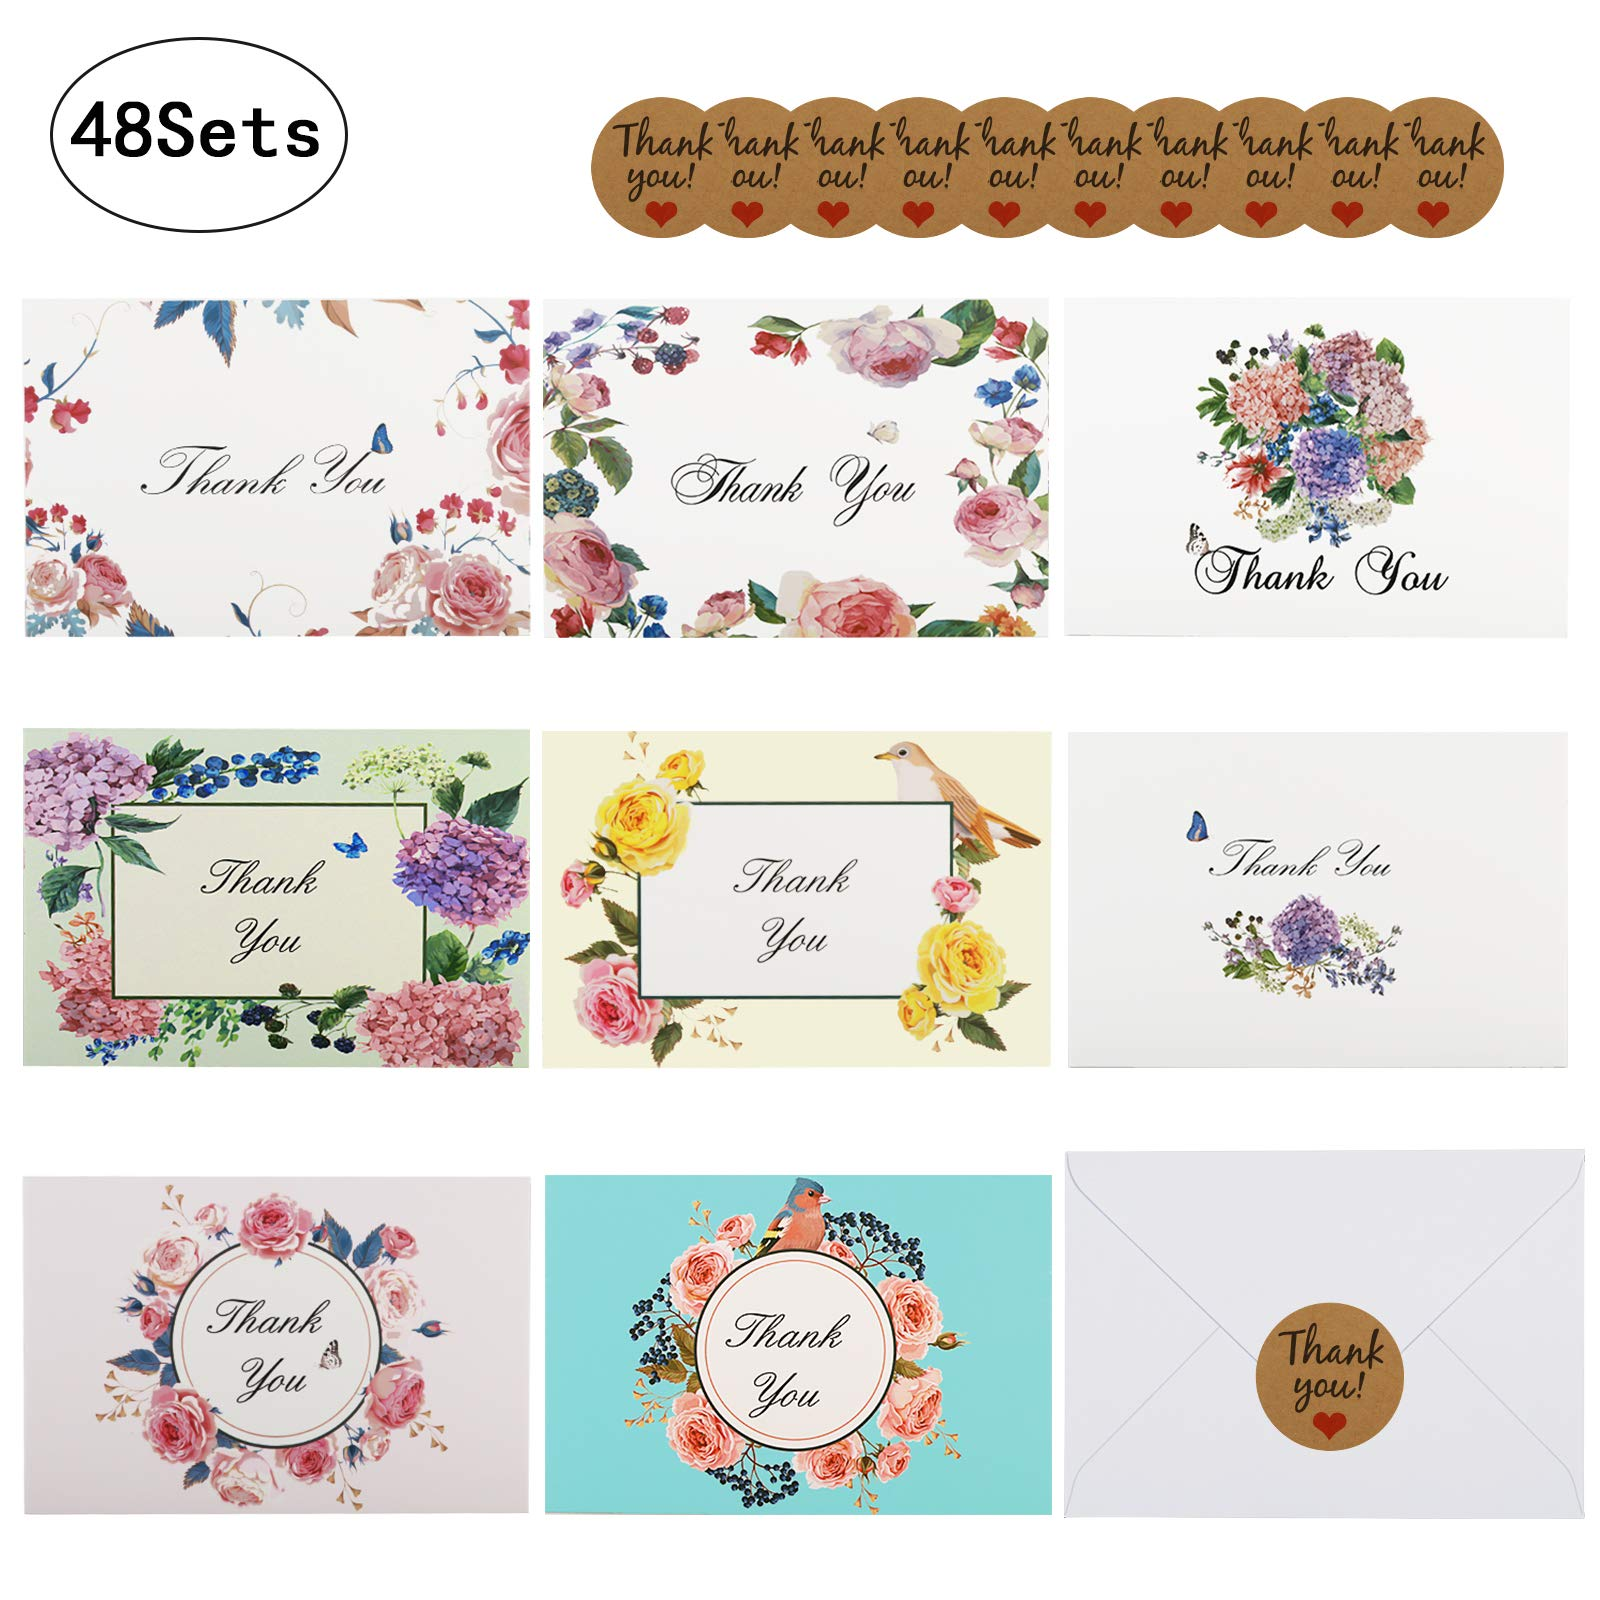 Thank You Cards - LANMOK Floral Flower Greeting Cards Notes for Birthdays,Wedding,Baby Shower,Bussiness,Graduation,Parties,Anniversary - 48 Sets with Envelopes and Self-Adhesive Sealing Stickers